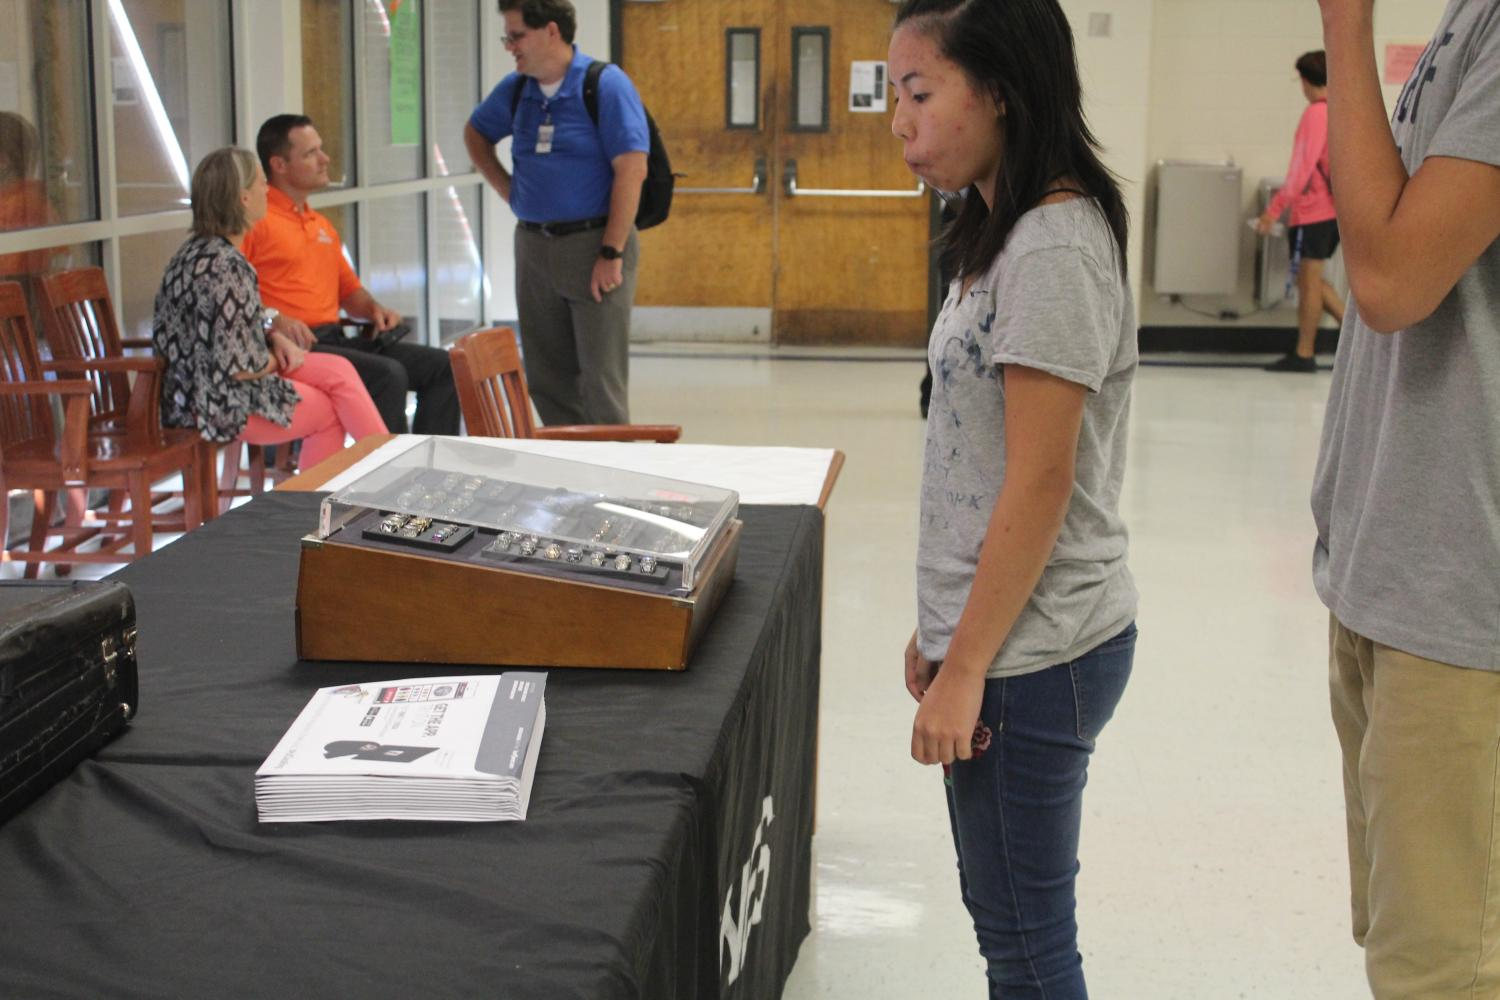 Herff Jones made an appearance in the cafeteria this week to promote class rings to the junior class. A student examining the ring case, which shows a variety of different rings for juniors and seniors. The display includes the sizes and different stones you can choose for your ring.